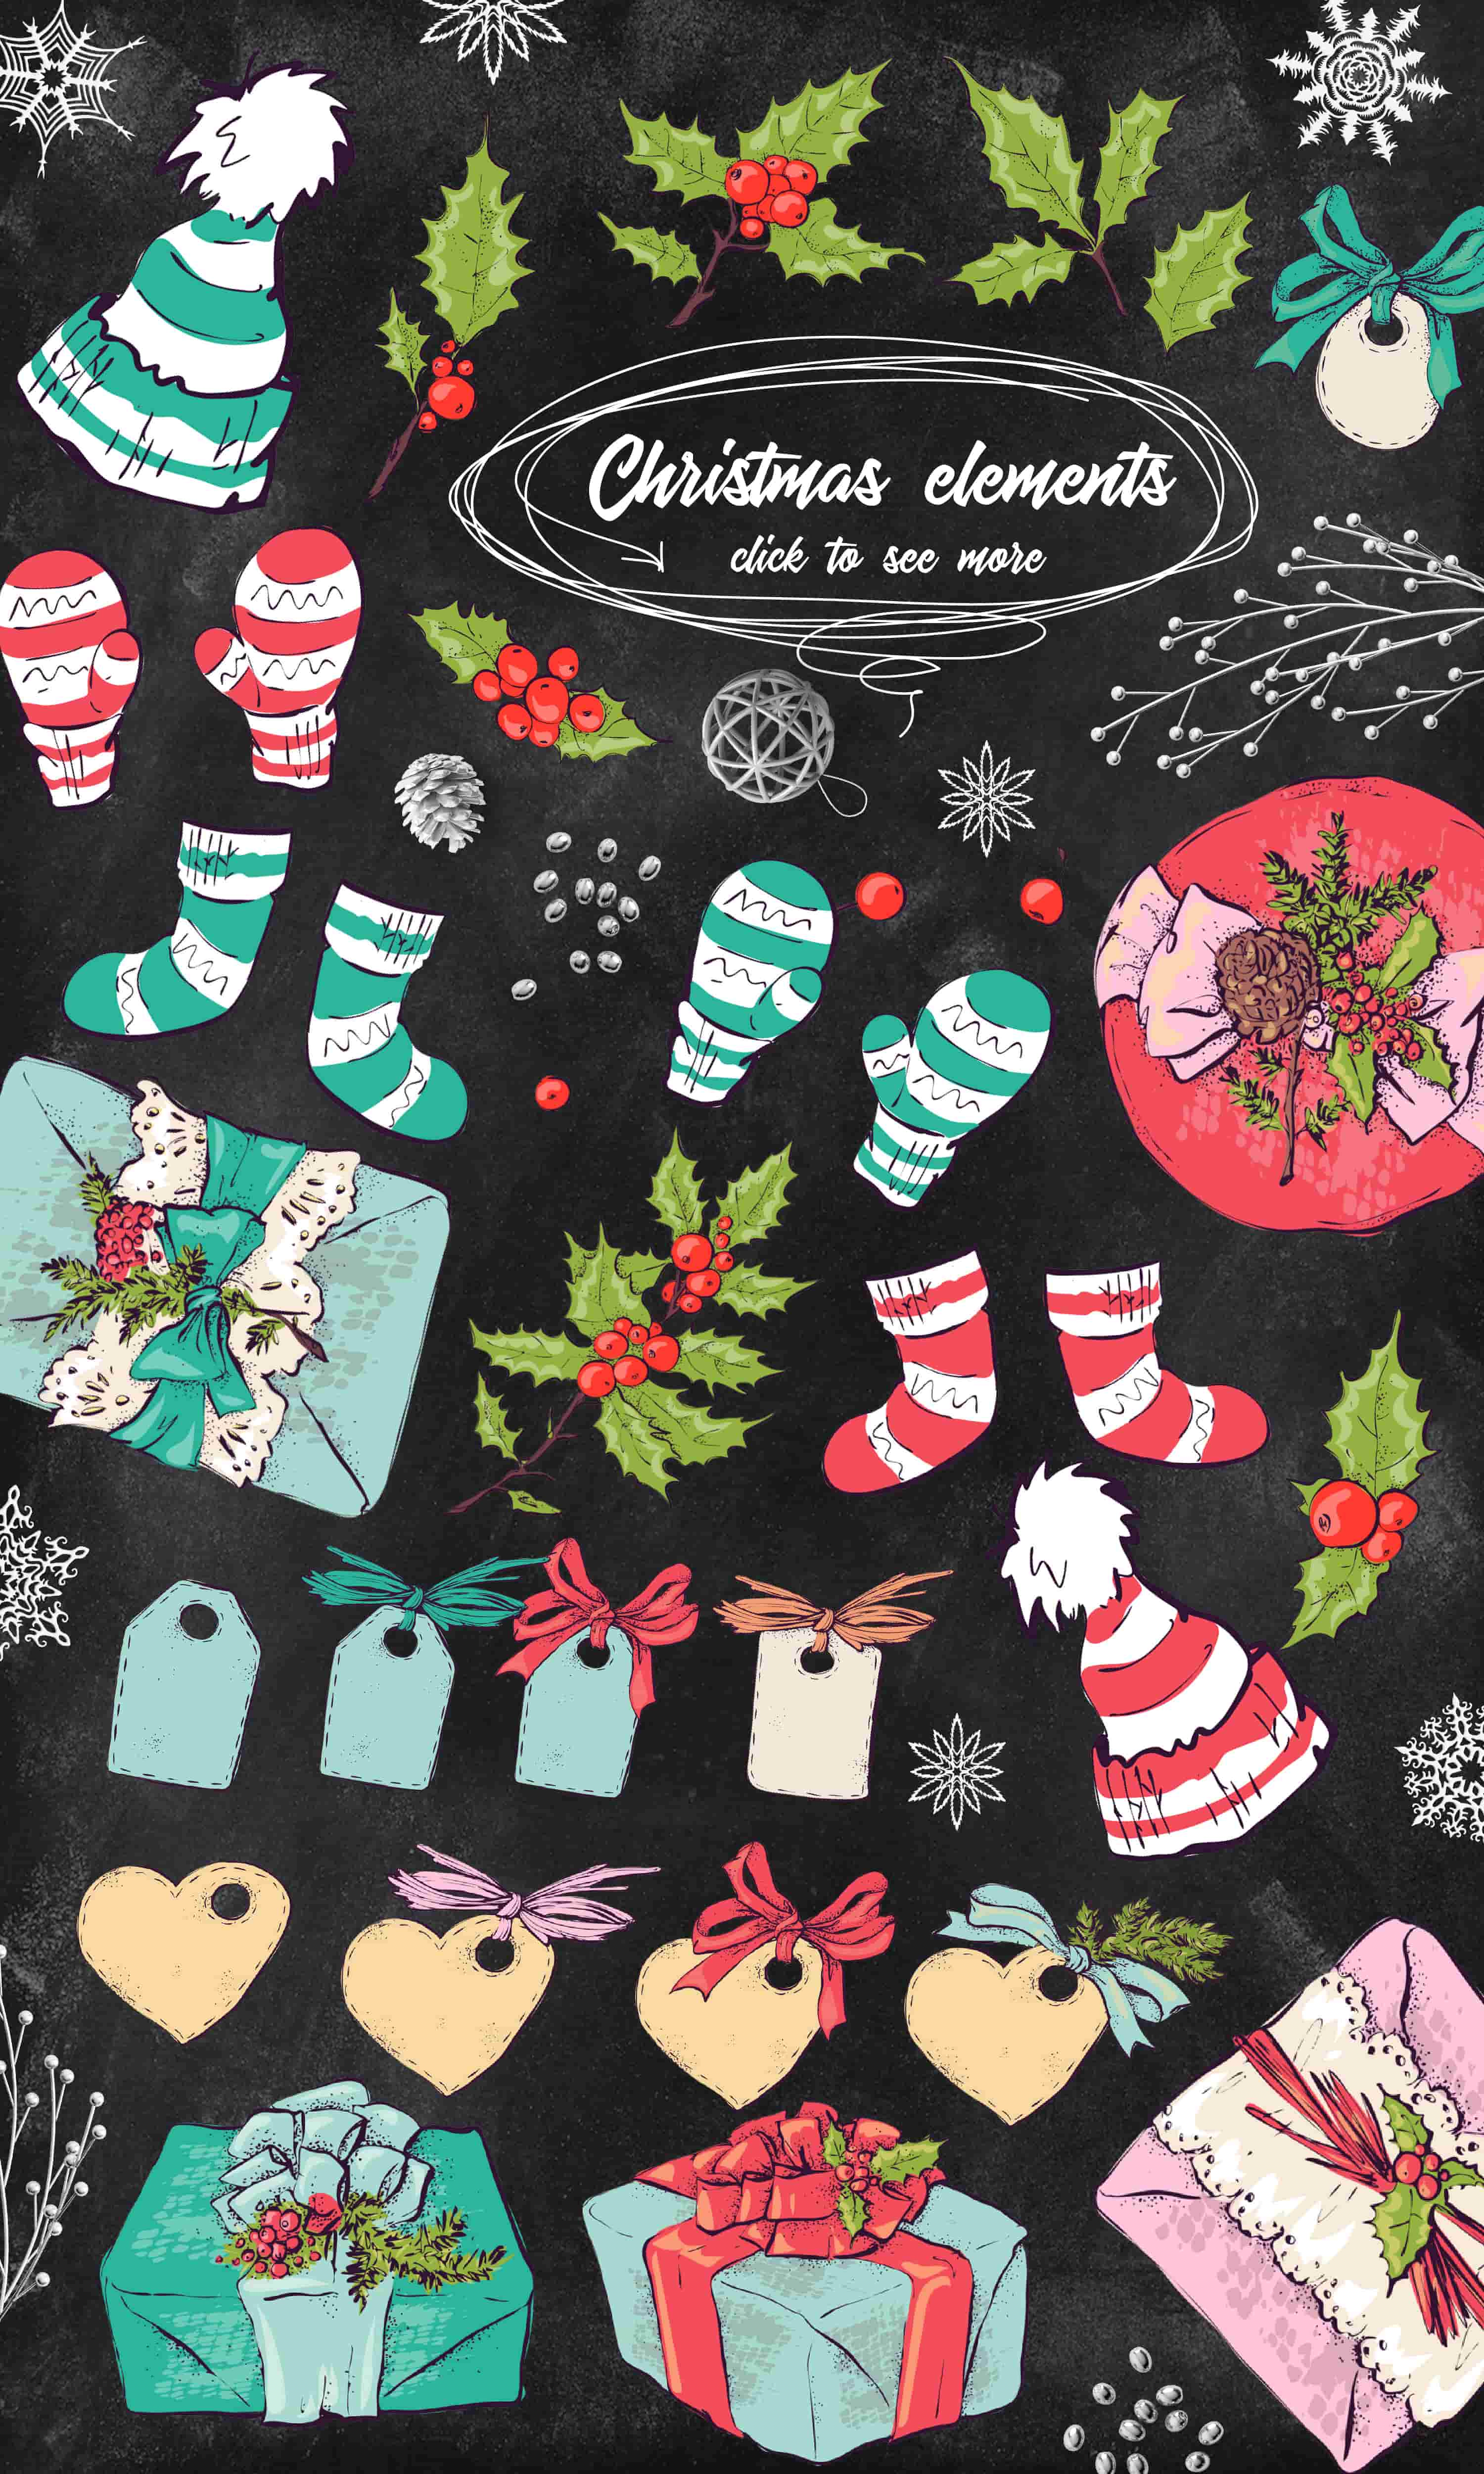 Merry Christmas Images: patterns, cards and items - 6 items1 min